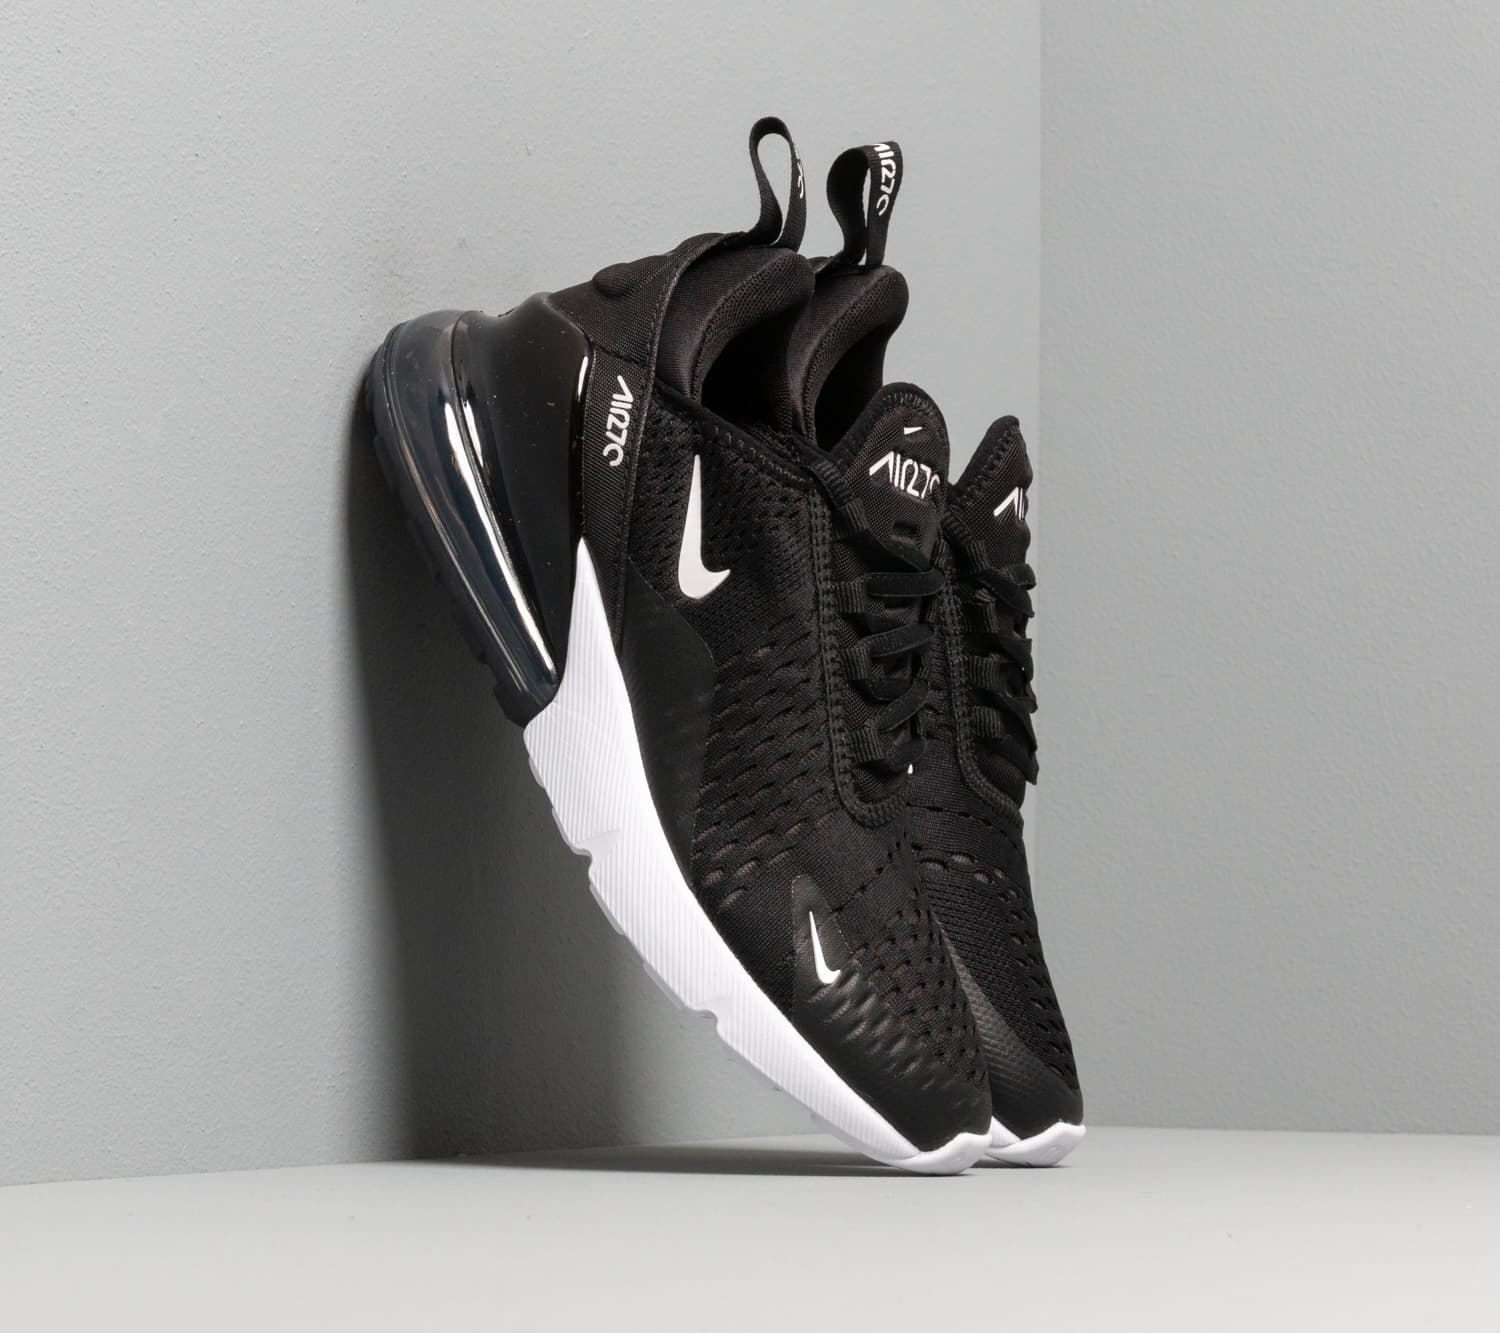 Nike W Air Max 270 Black/ Anthracite-White EUR 41